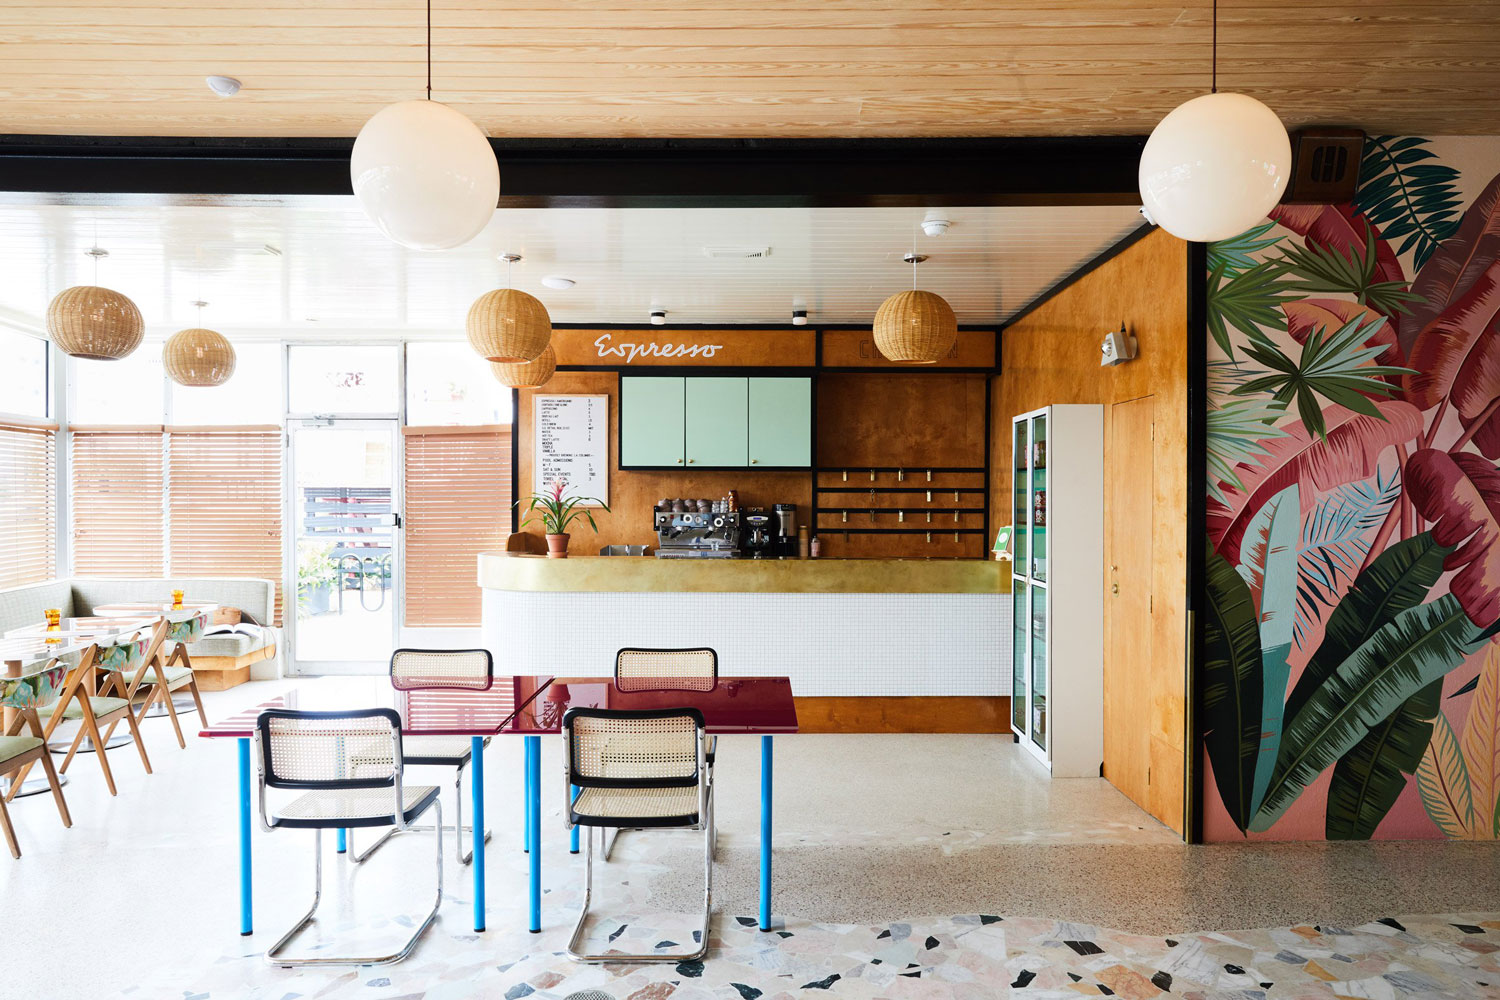 Blog 1 The-Drifter-Hotel-in-New-Orleans-by-Concordia-Architectyre-and-Nicole-Cota-Studio-Yellowtrace-12.jpg